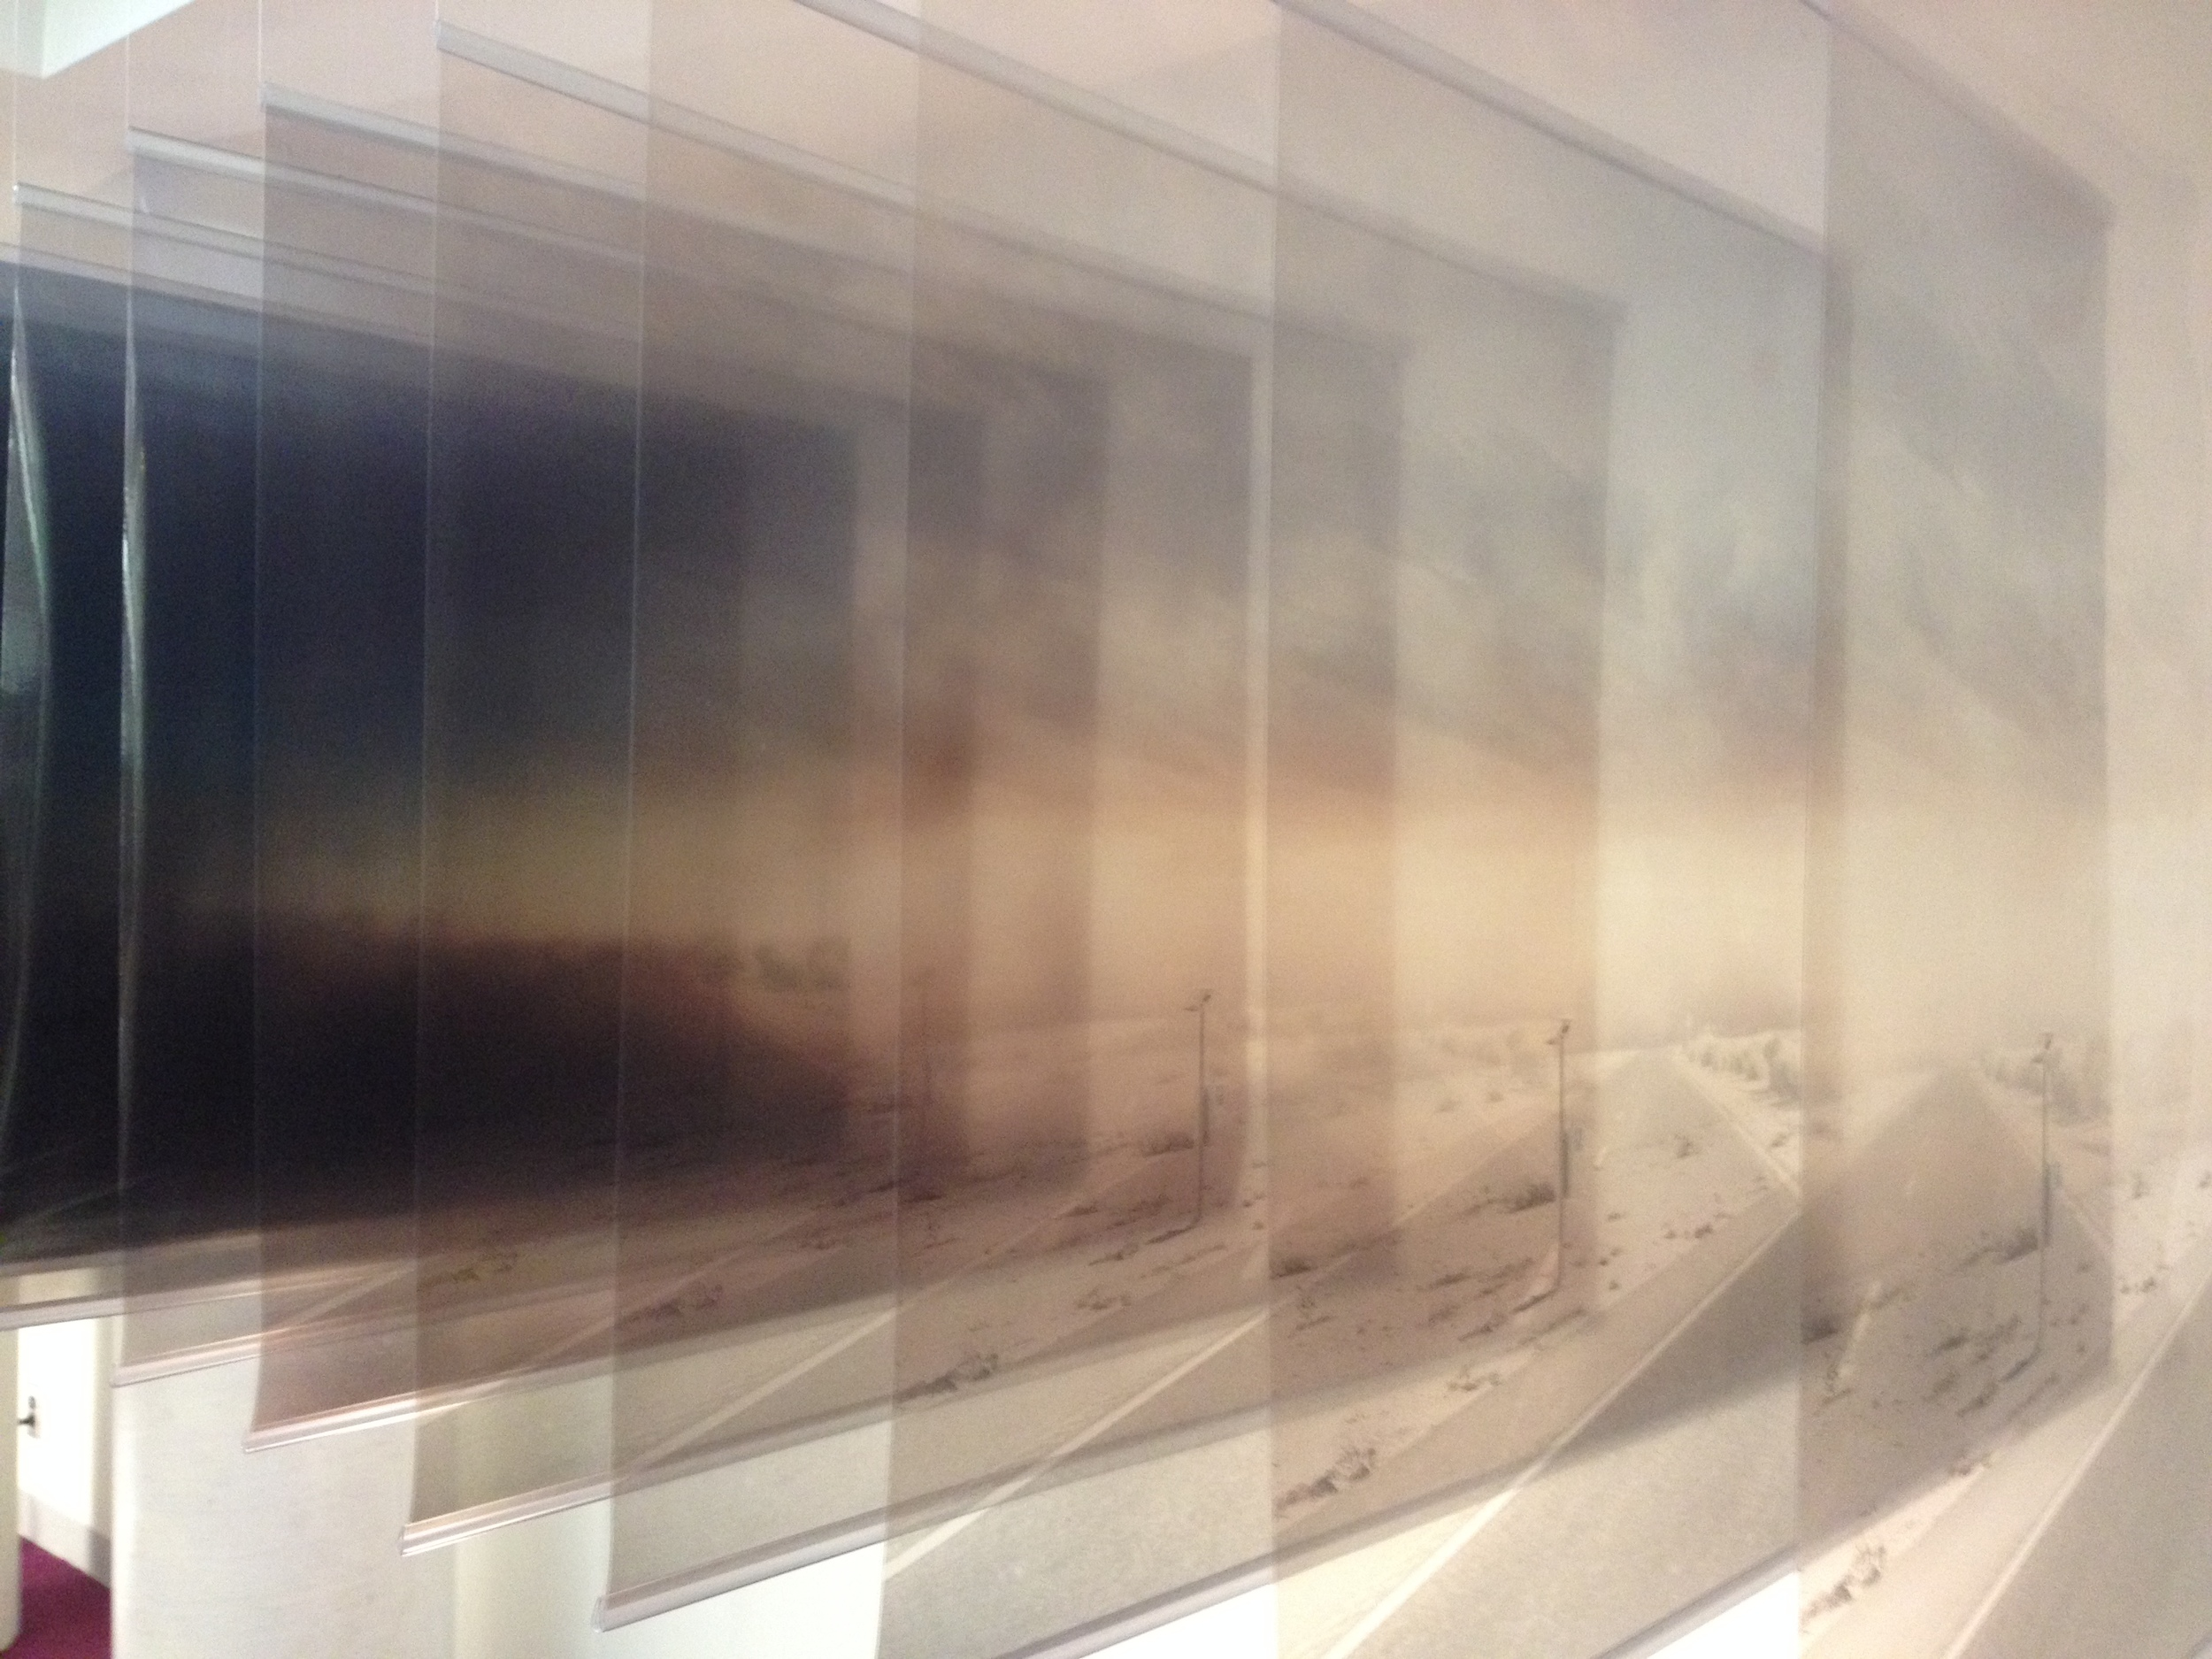 ASLA Nomination 2015  Exhibition: 9-screen single-channel video, time-stamped serial imagery model, acrylic representation of dust storm, view finders, speculative cartography and design imagery, exhibition book  Gropius Room, Harvard University, 14 May 2015  Photograph: Emily Wettstein